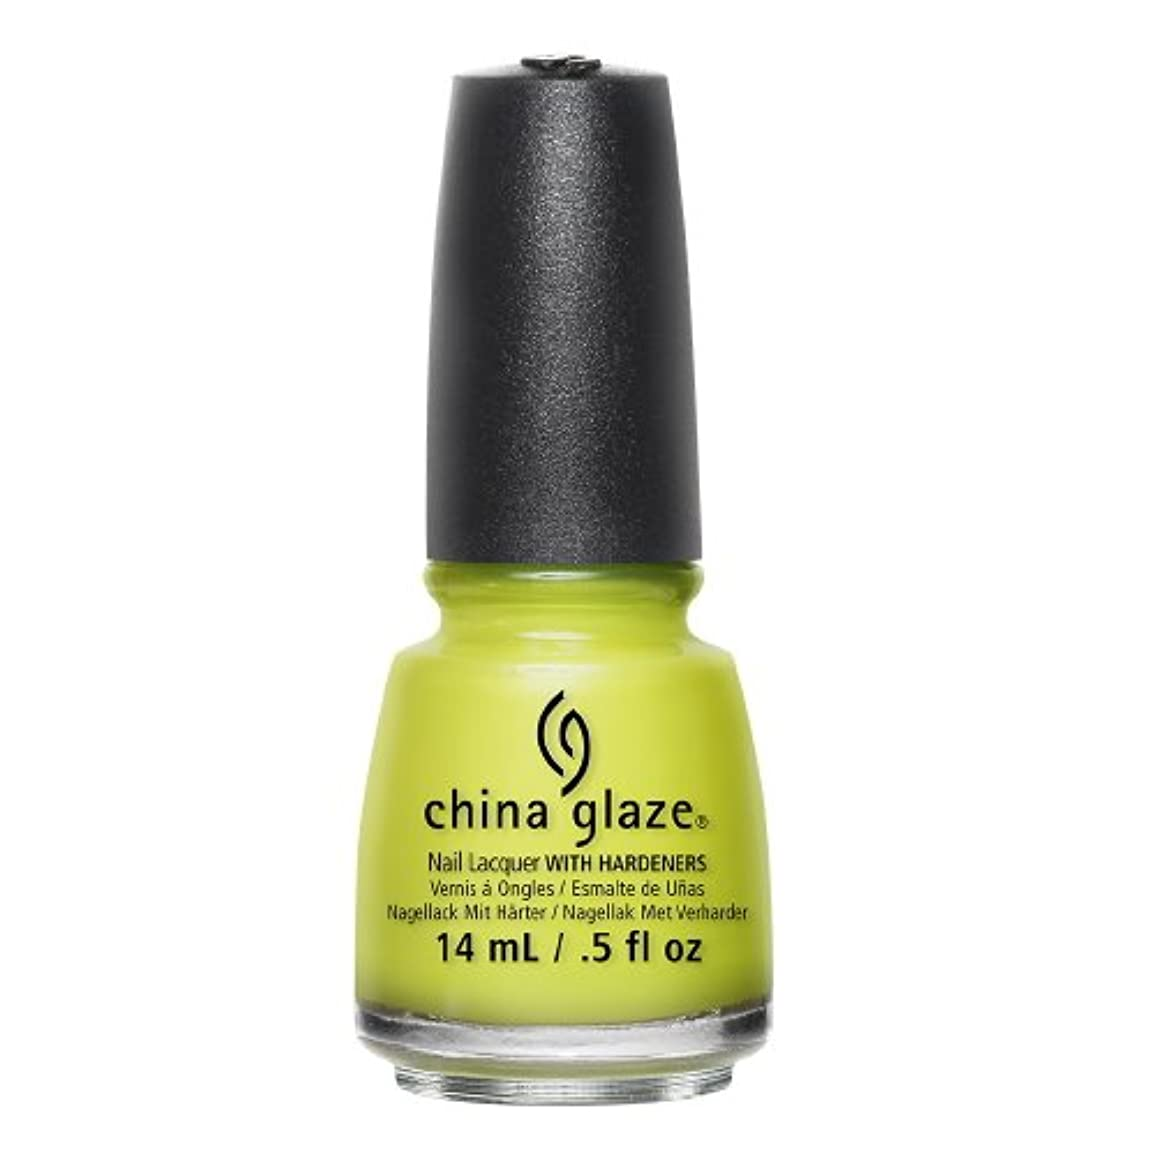 文明化するかける腐敗(6 Pack) CHINA GLAZE Nail Lacquer - Road Trip - Trip of A Limetime (並行輸入品)